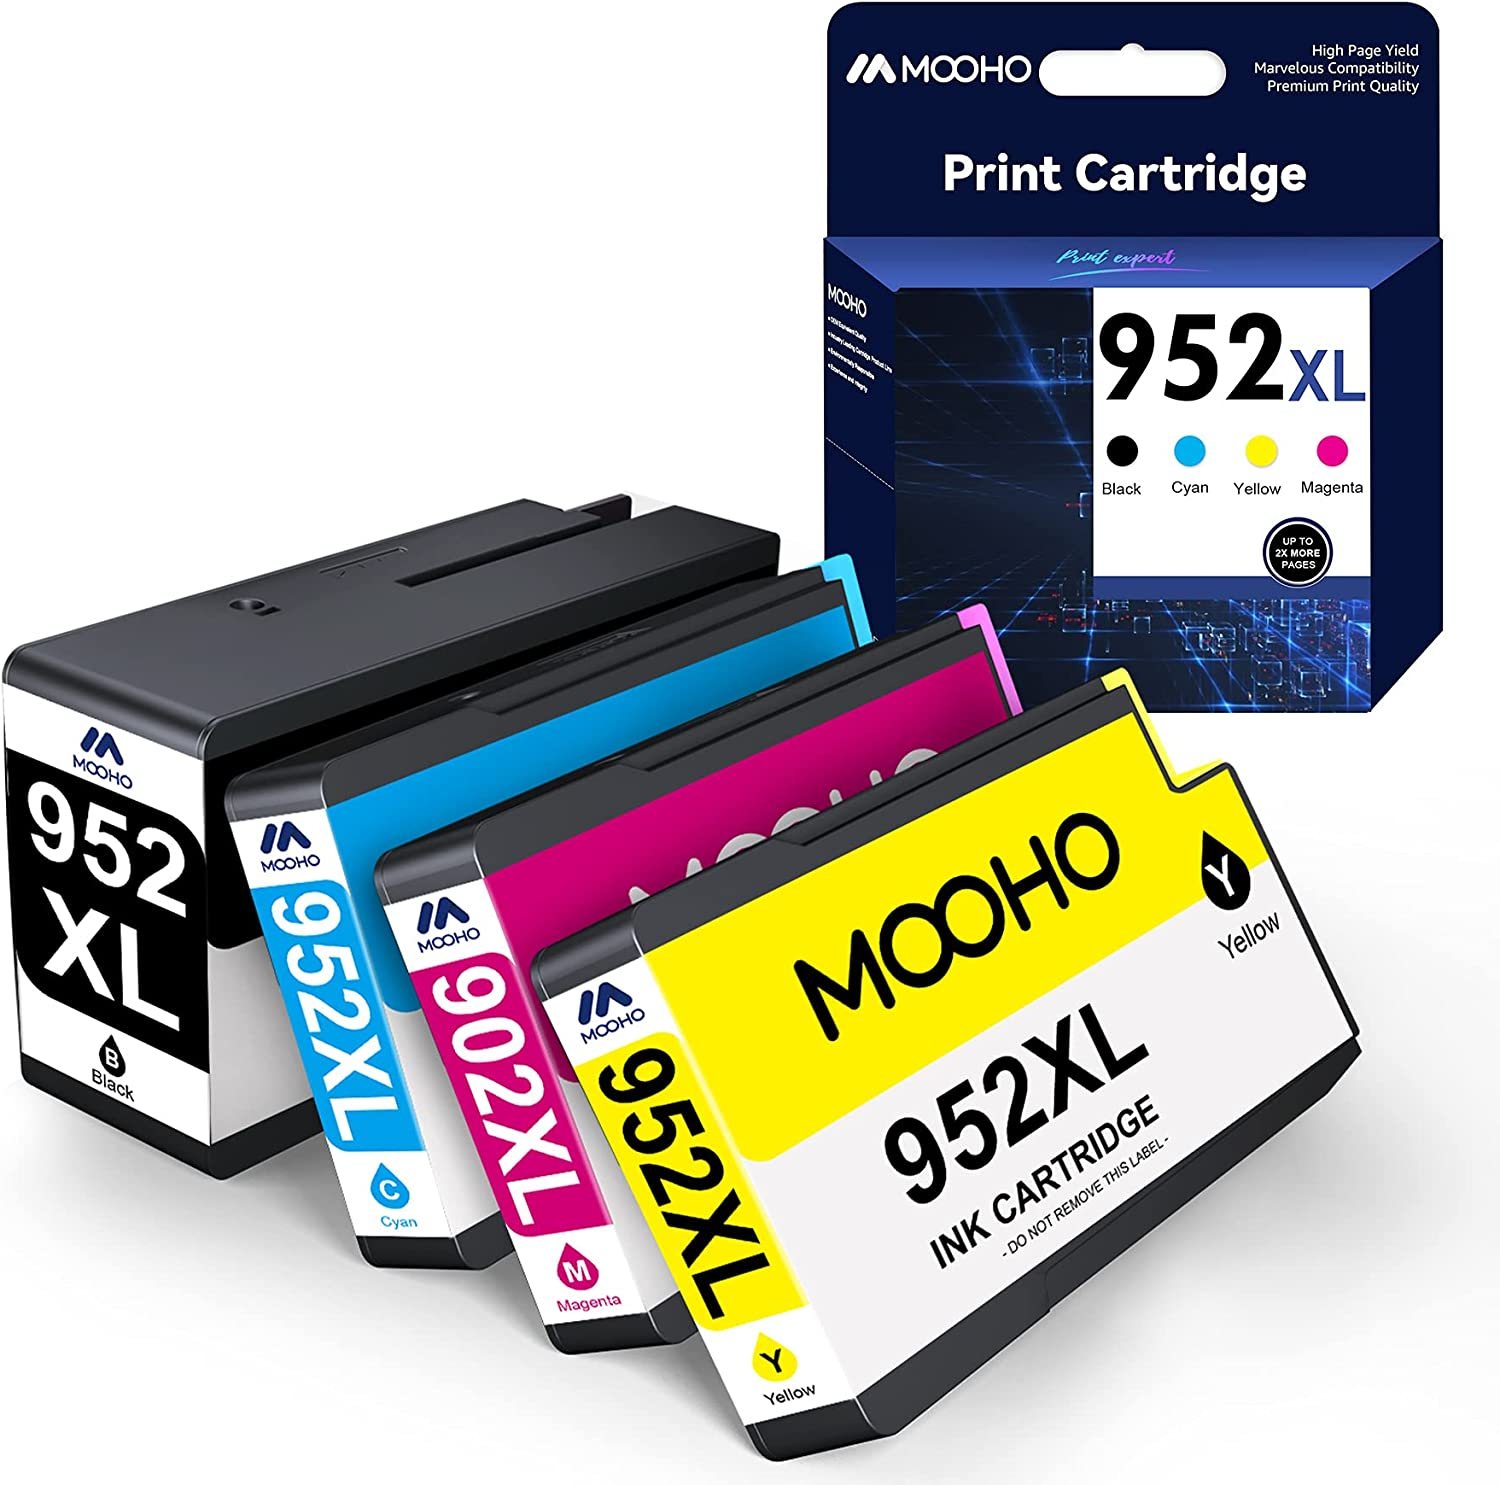 MOOHO Remanufactured Ink-Cartridge Replacement for HP 952 XL 952xl for HP OfficeJet 8710 8720 7740 8715 8210 8740 8725 7720 8702 8216 Printer (Black Cyan Yellow Magenta, 4 Pack)